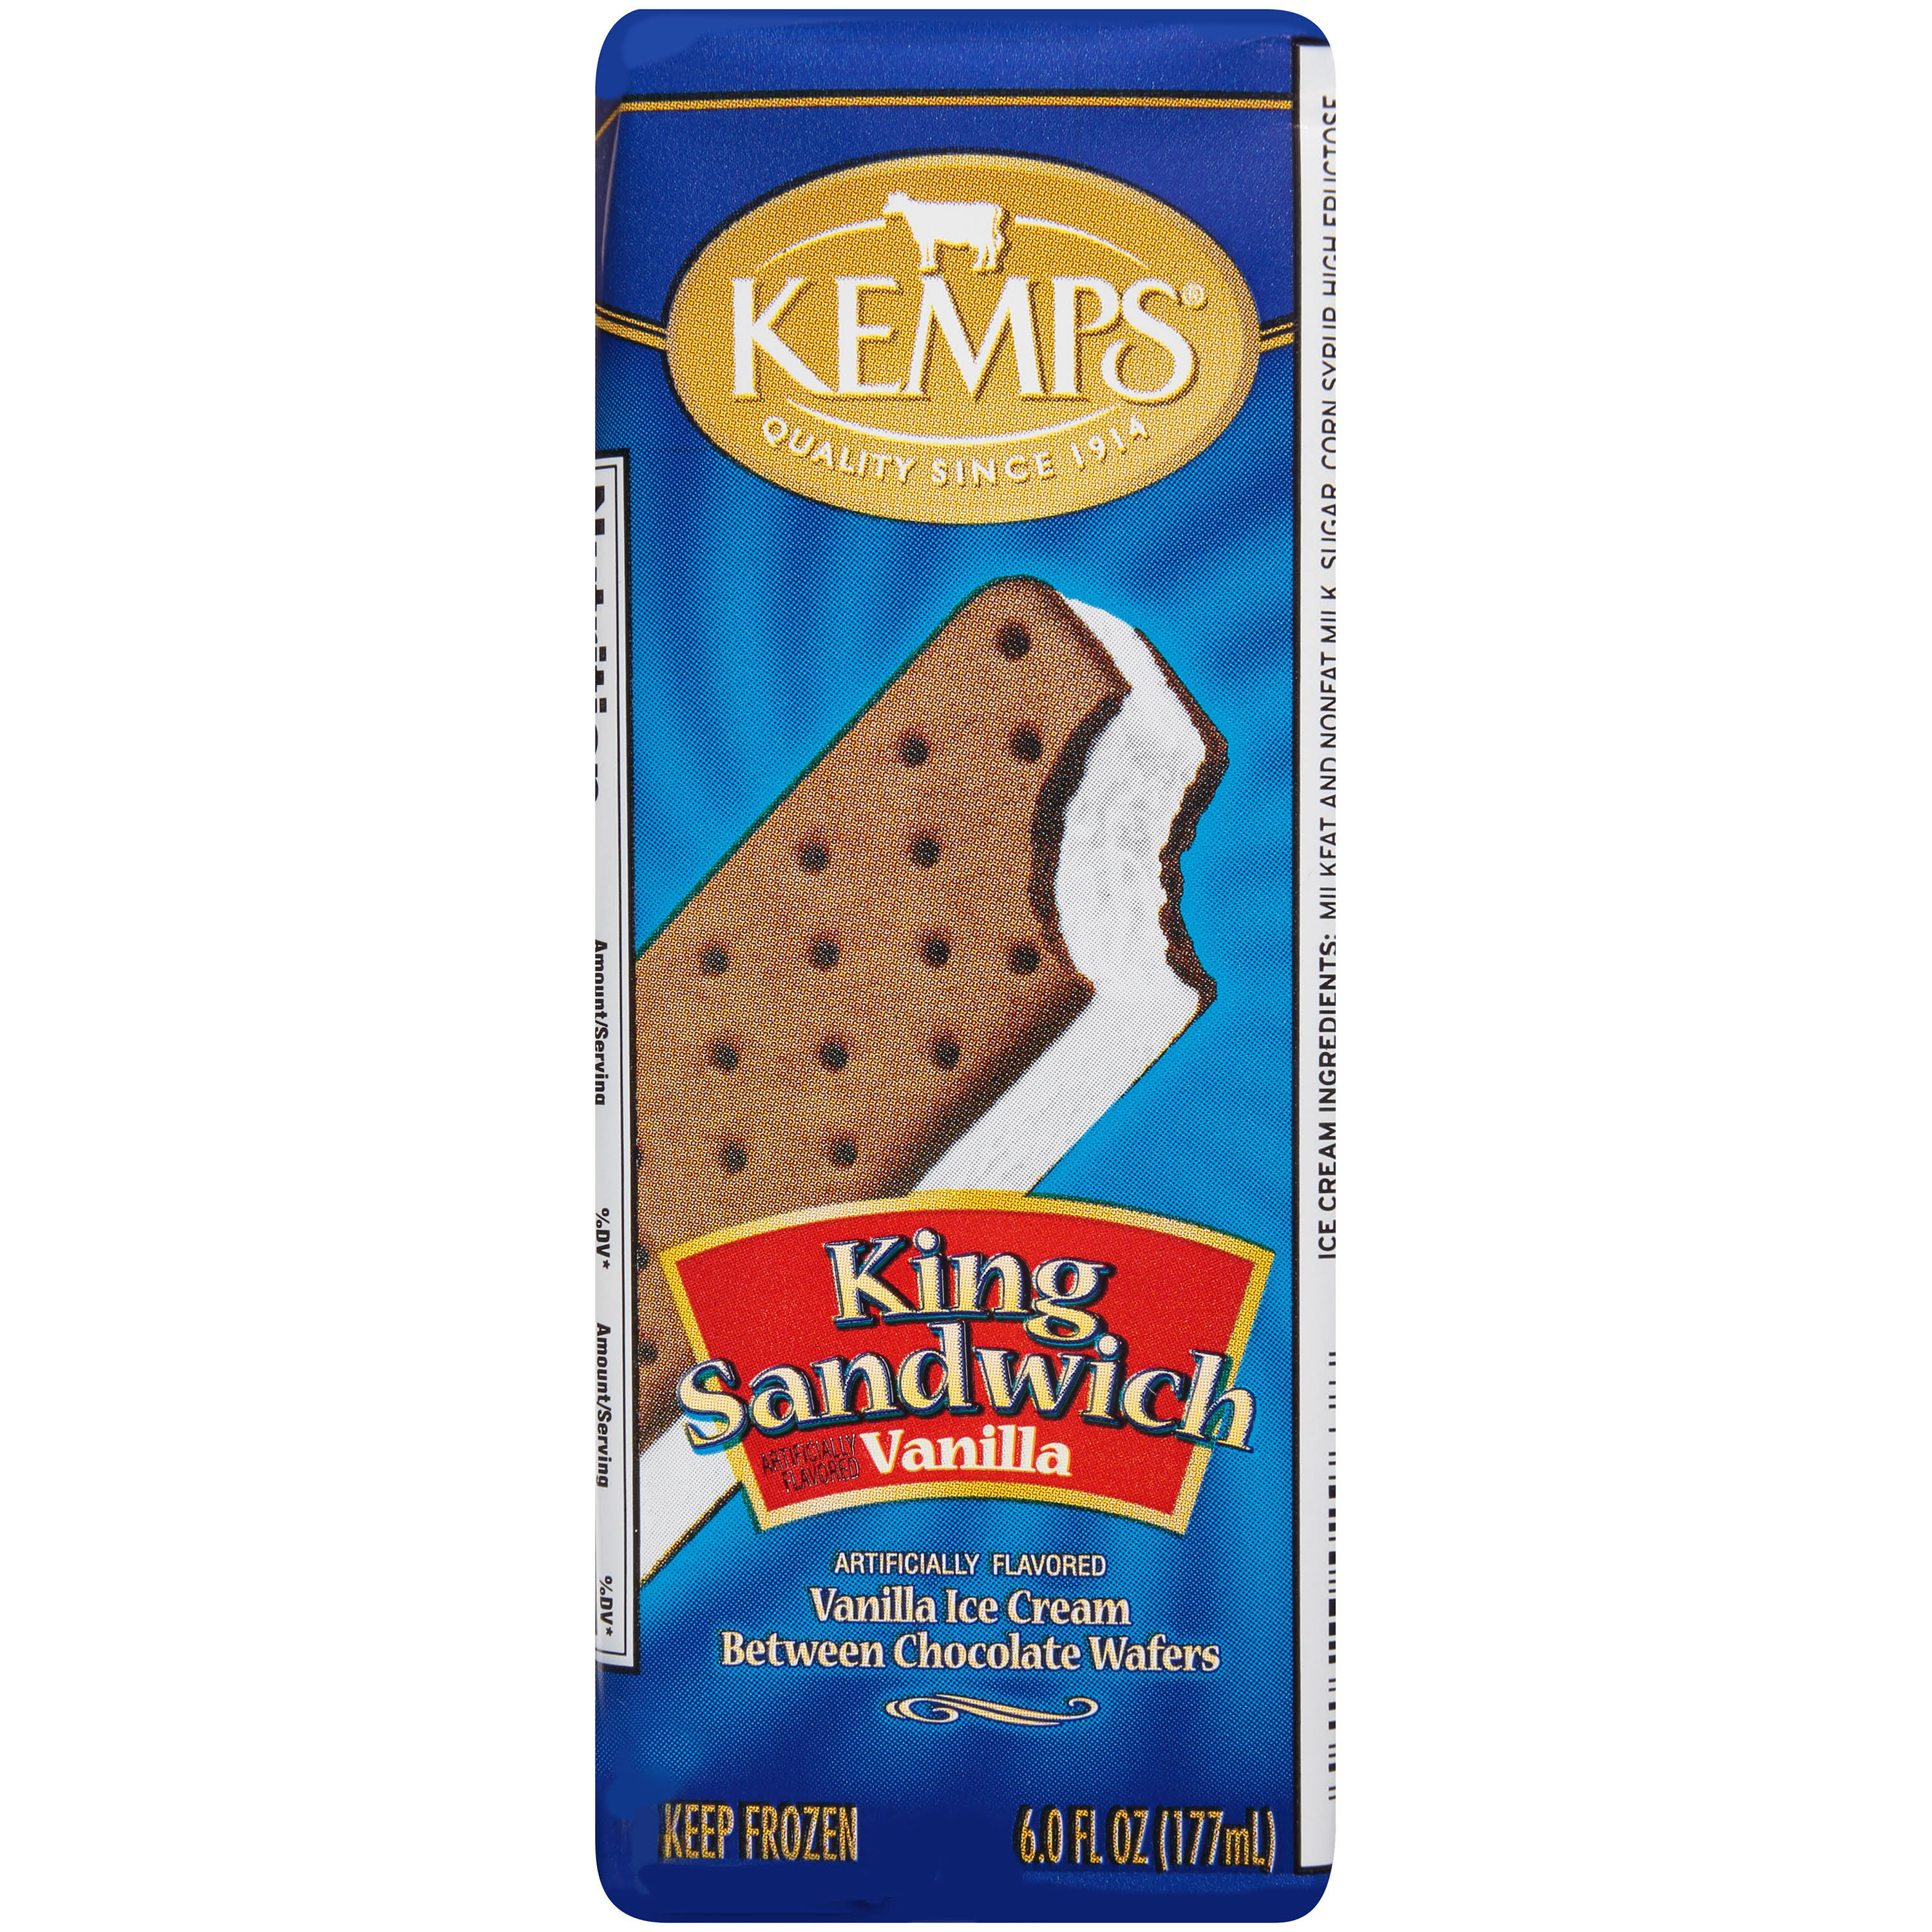 Kemps King Sandwich Vanilla Ice Cream Sandwich 6.0 Fl. Oz. Wrapper